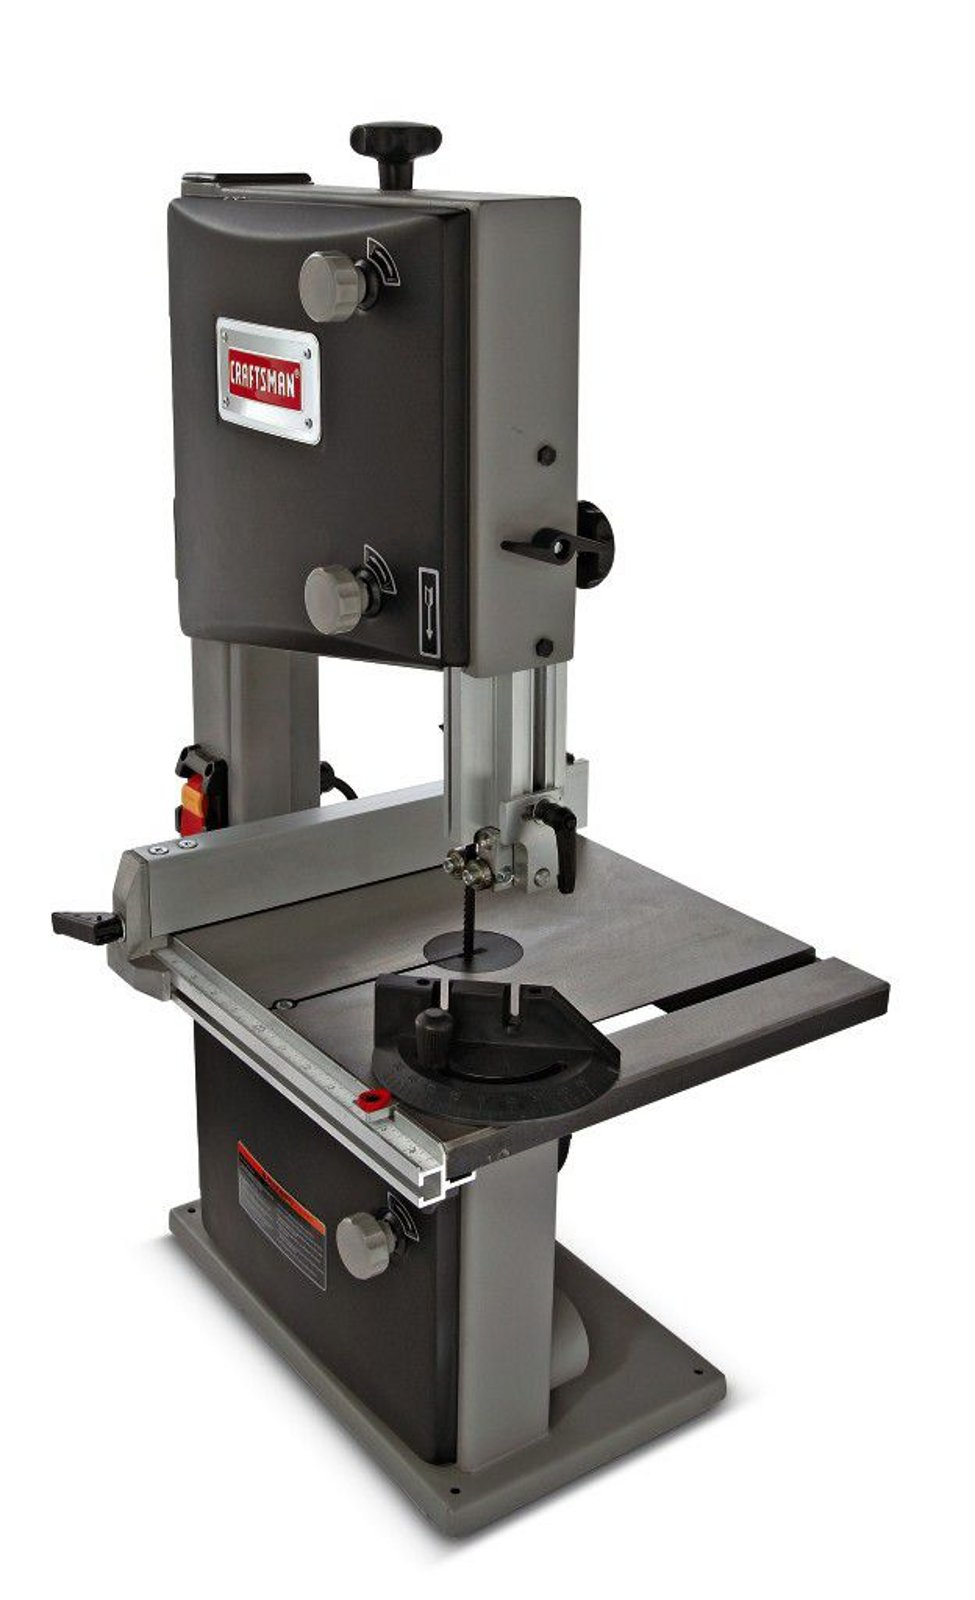 "Craftsman 1/3 hp 3.5 amp 10"" Band Saw (21400)"